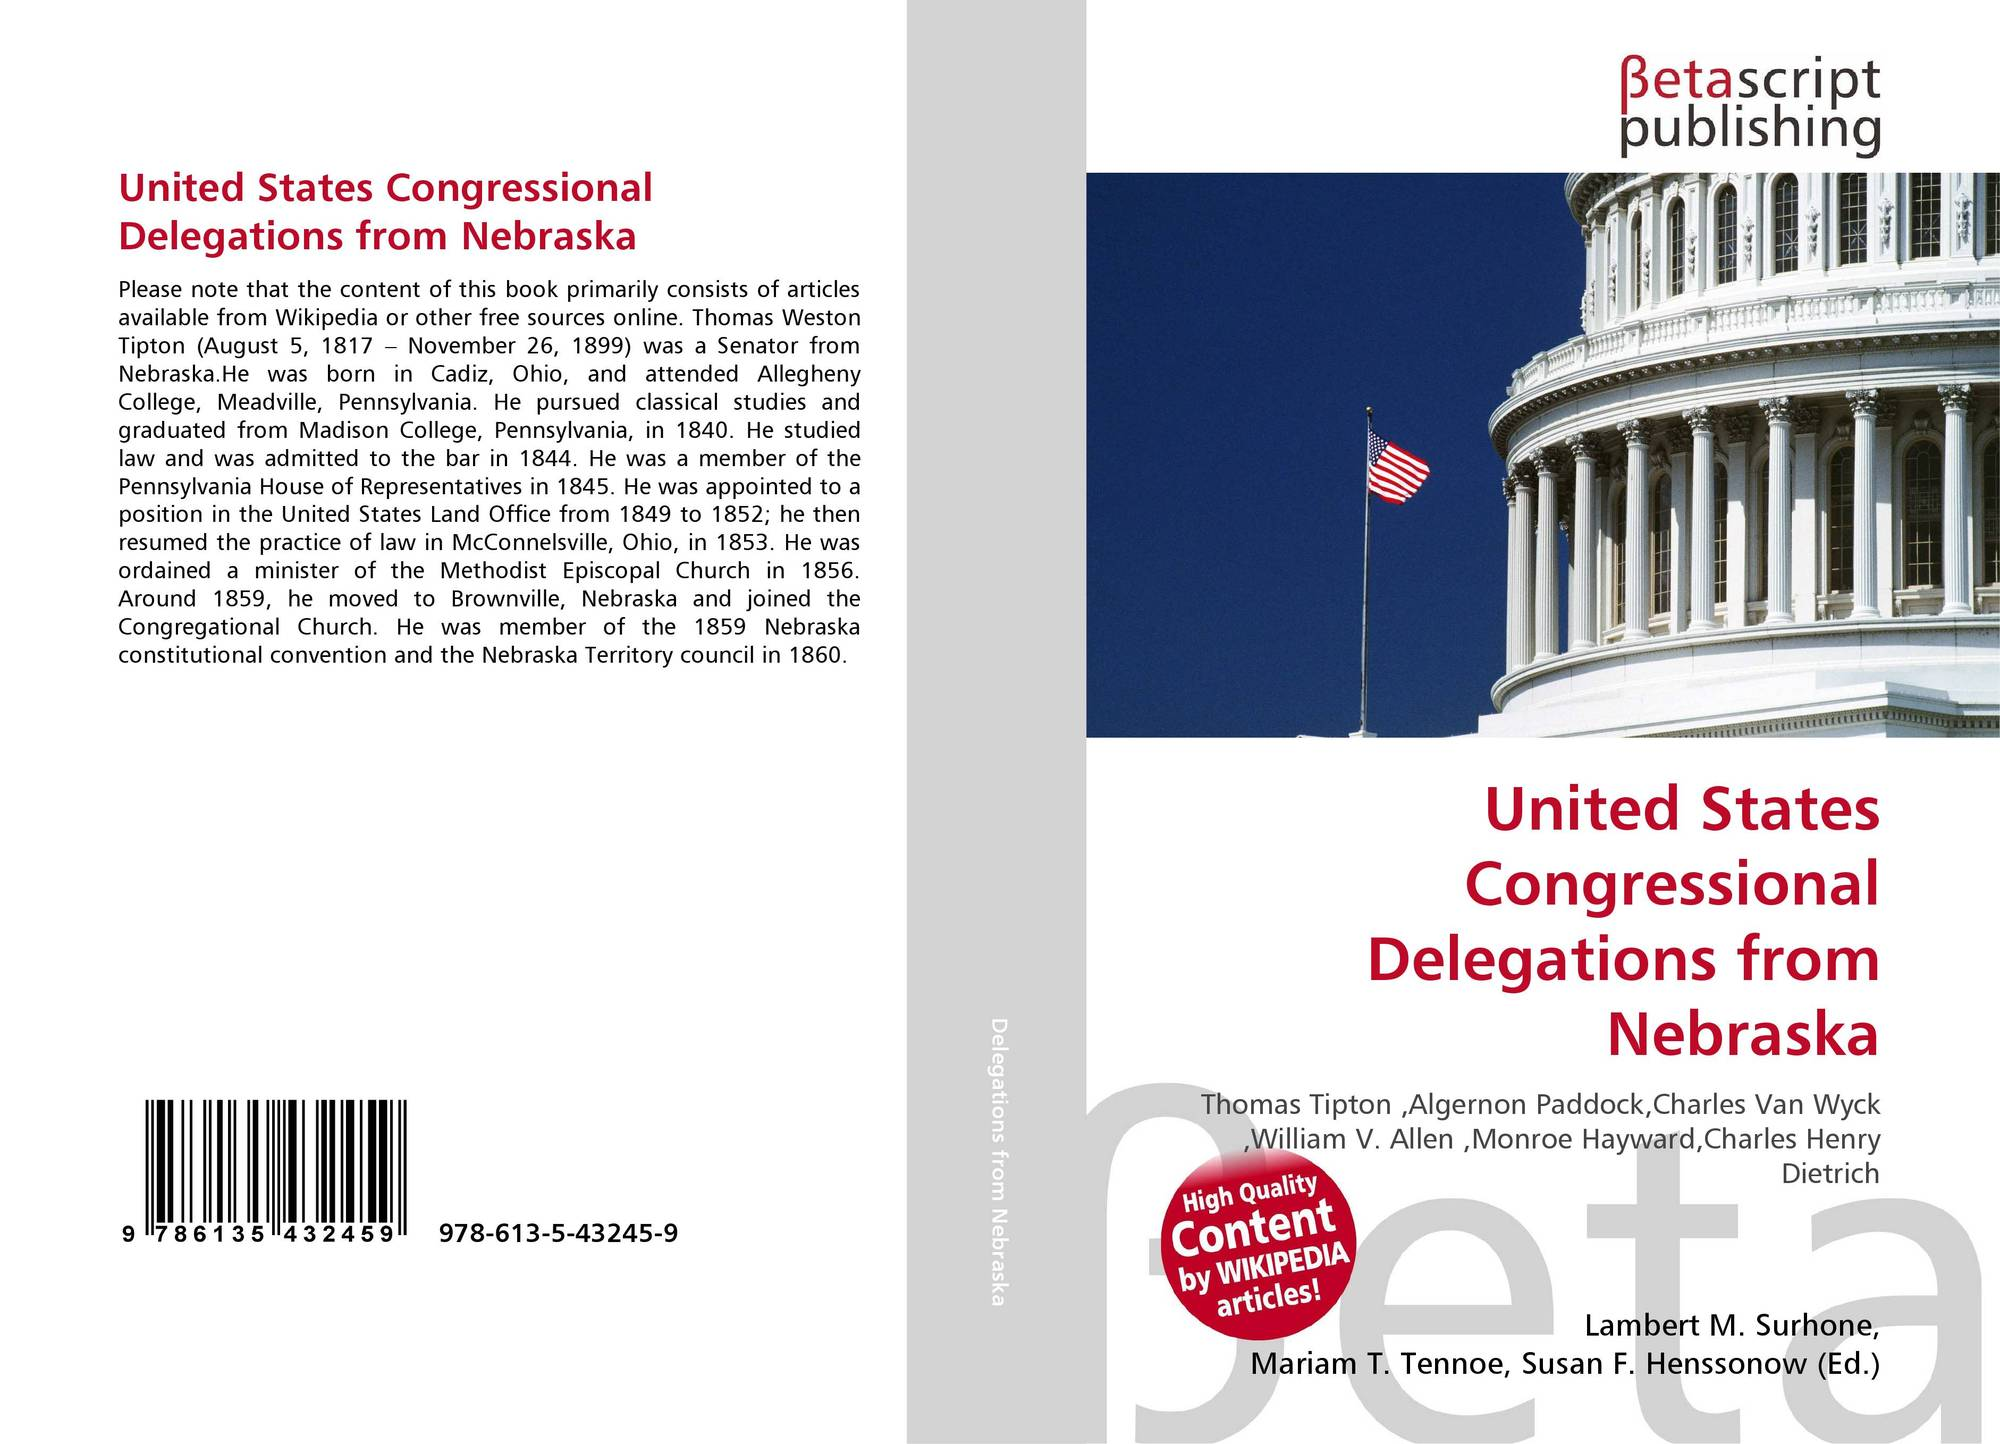 an analysis of the process of the electoral college in the united states congress The electoral college is the indirect process for electing the president and vice president of the united states prescribed by the us constitution, it is the compromise between a direct, popular vote and a vote of only members of congress.